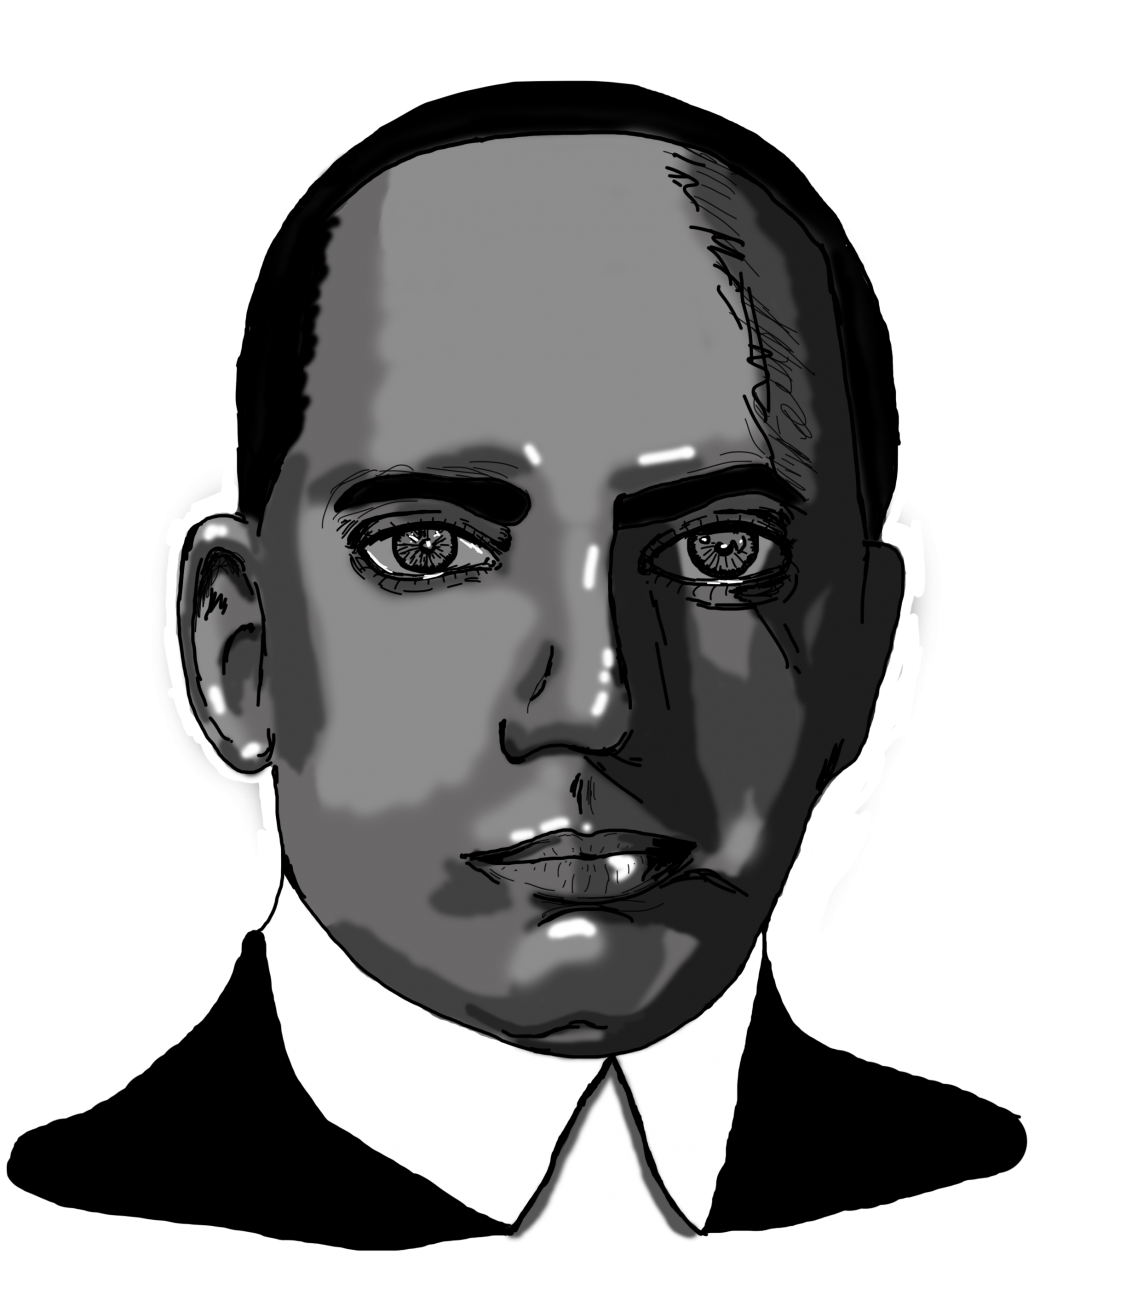 Dr. Carter G. Woodson created Negro History Week in 1926.